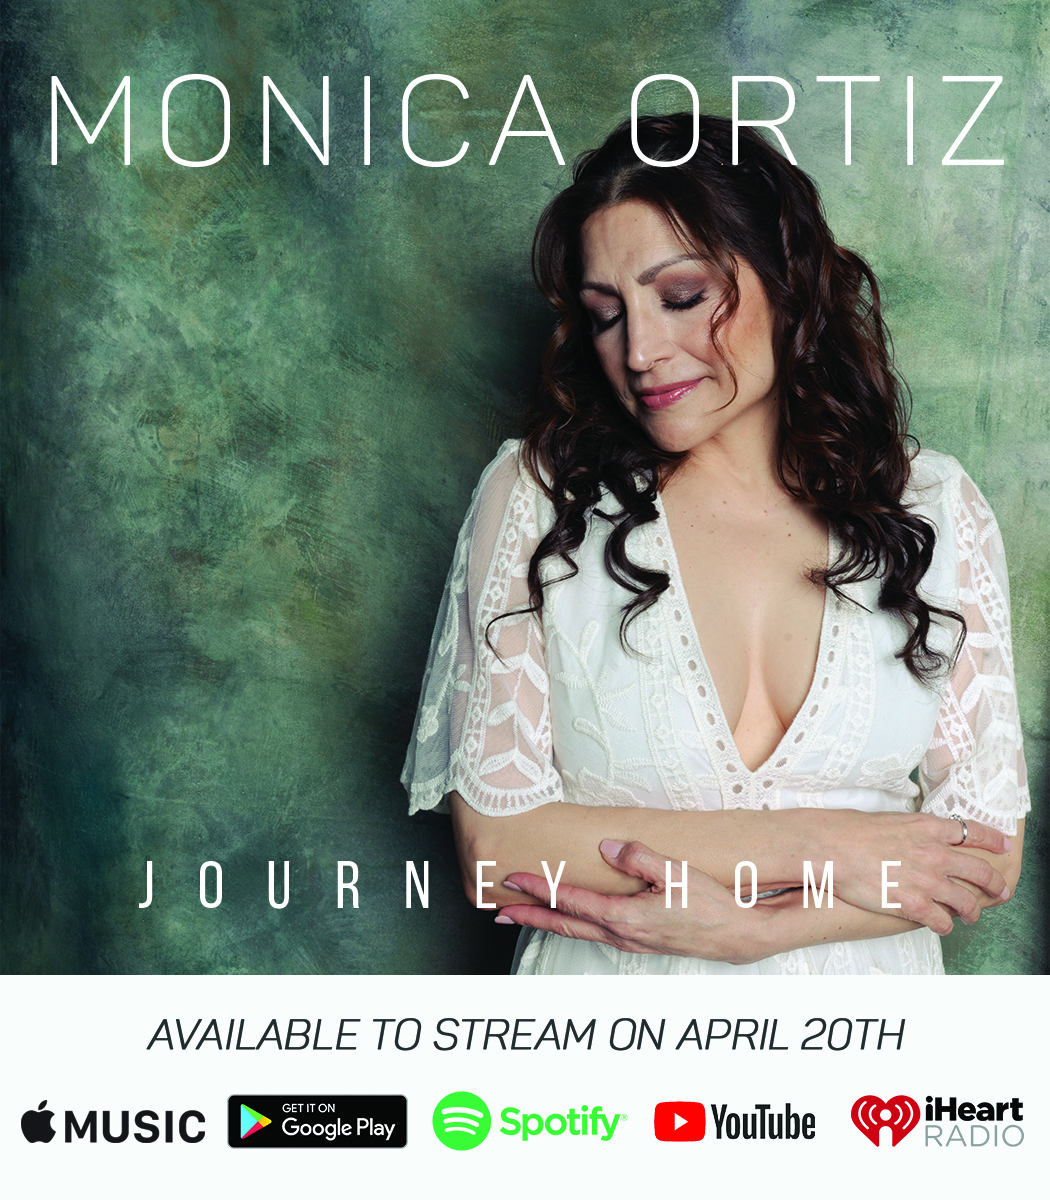 Monica Ortiz - Journey Home.jpg